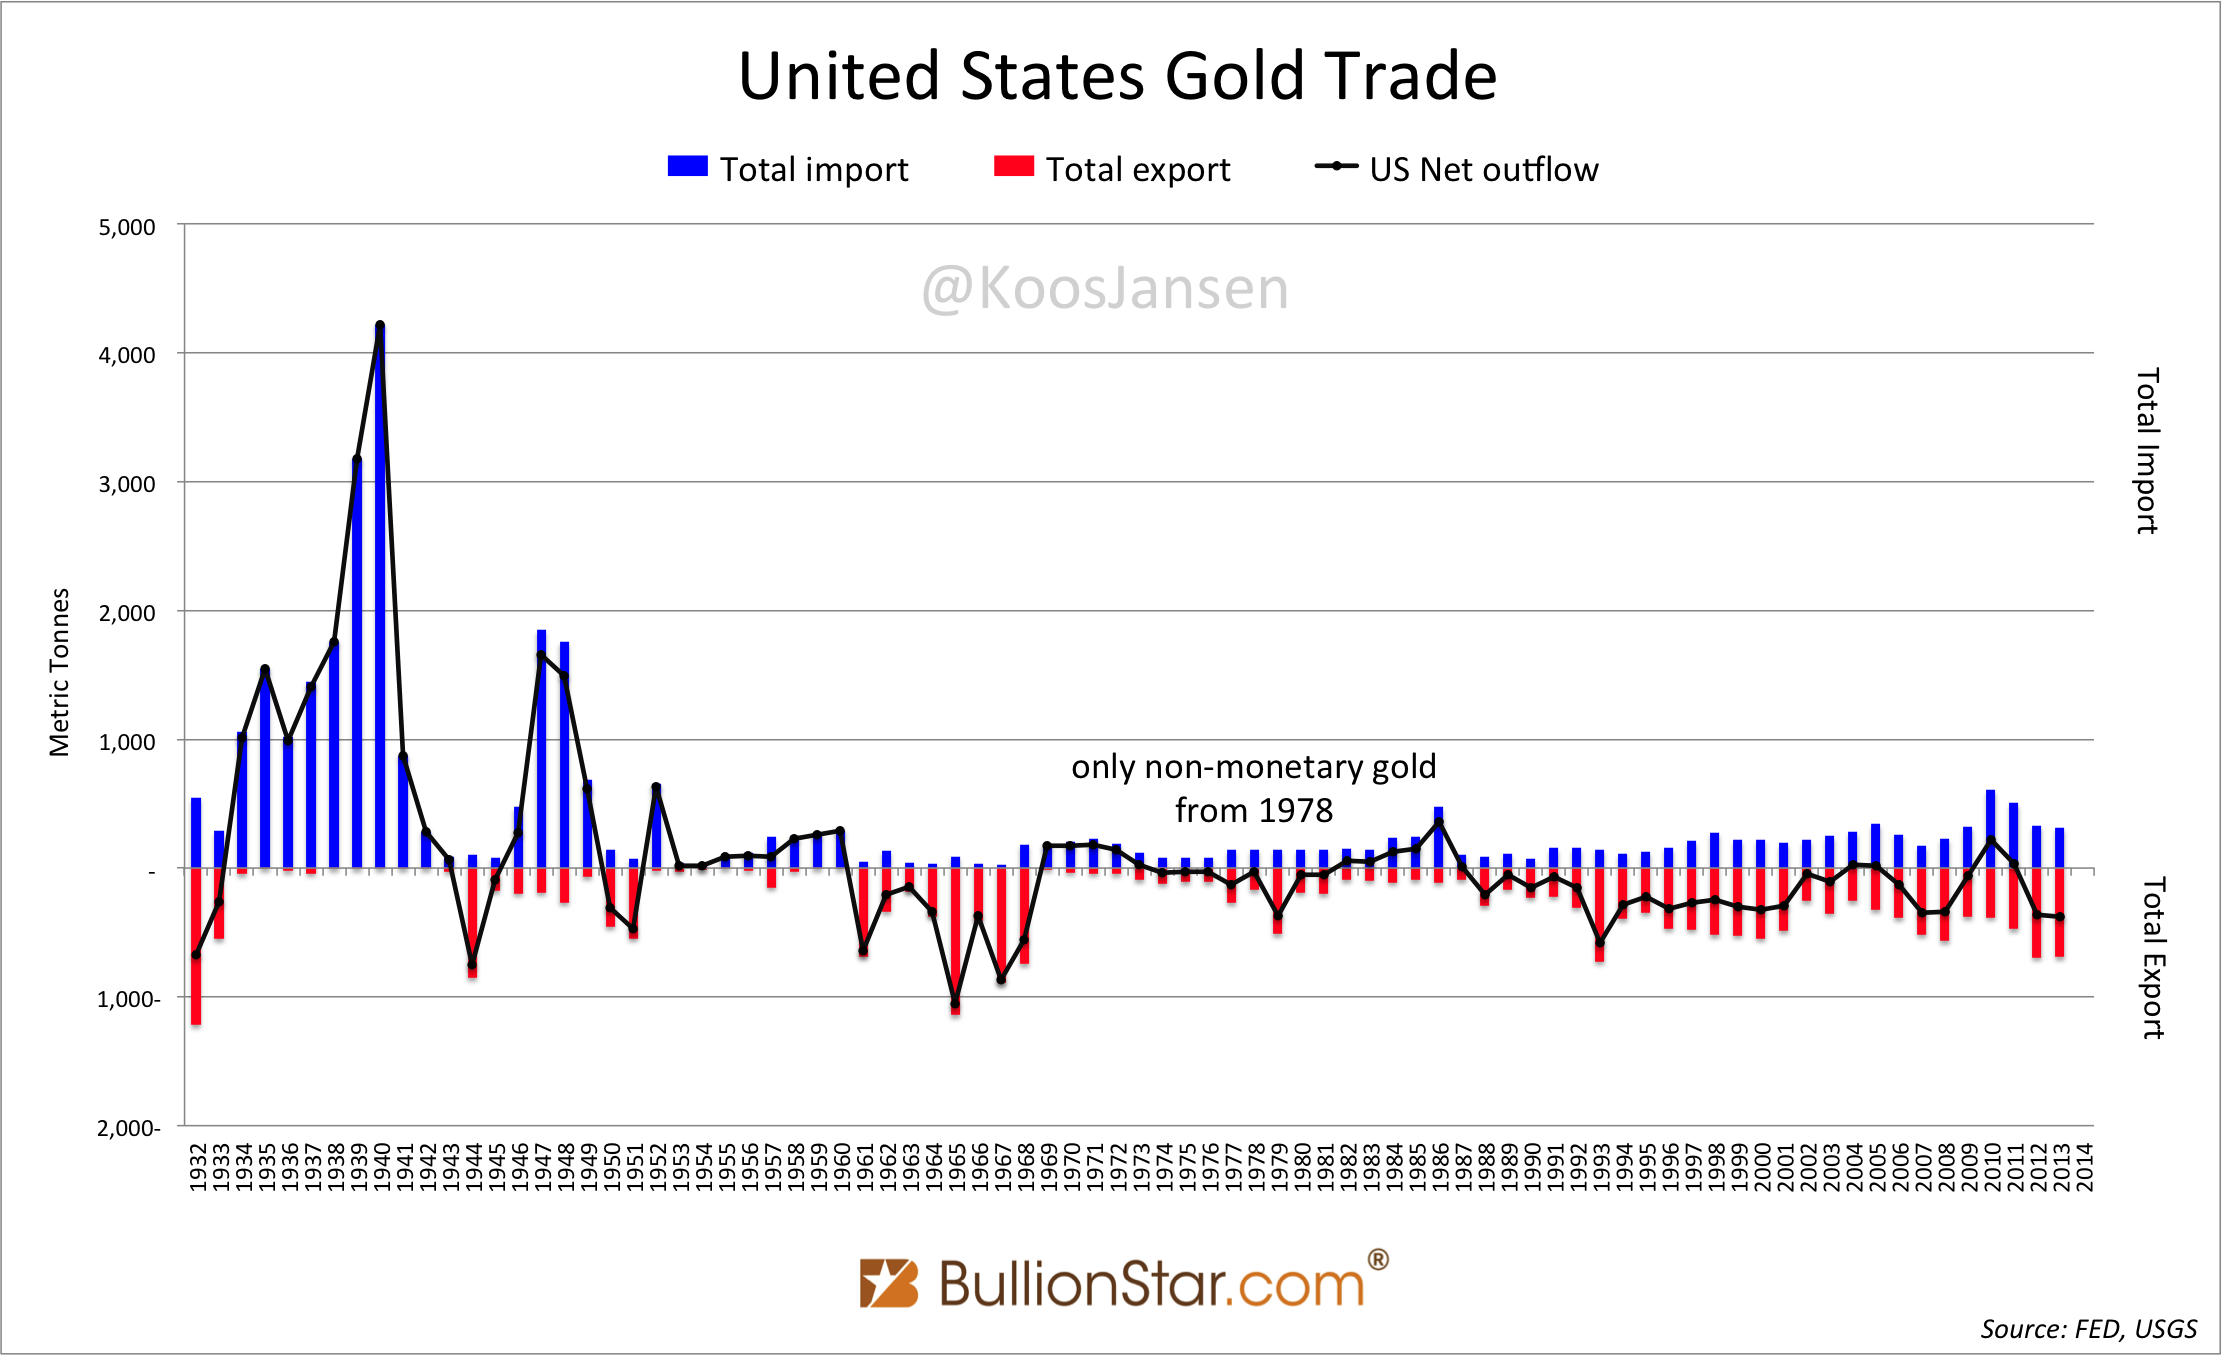 US gold trade 1932 - 2014